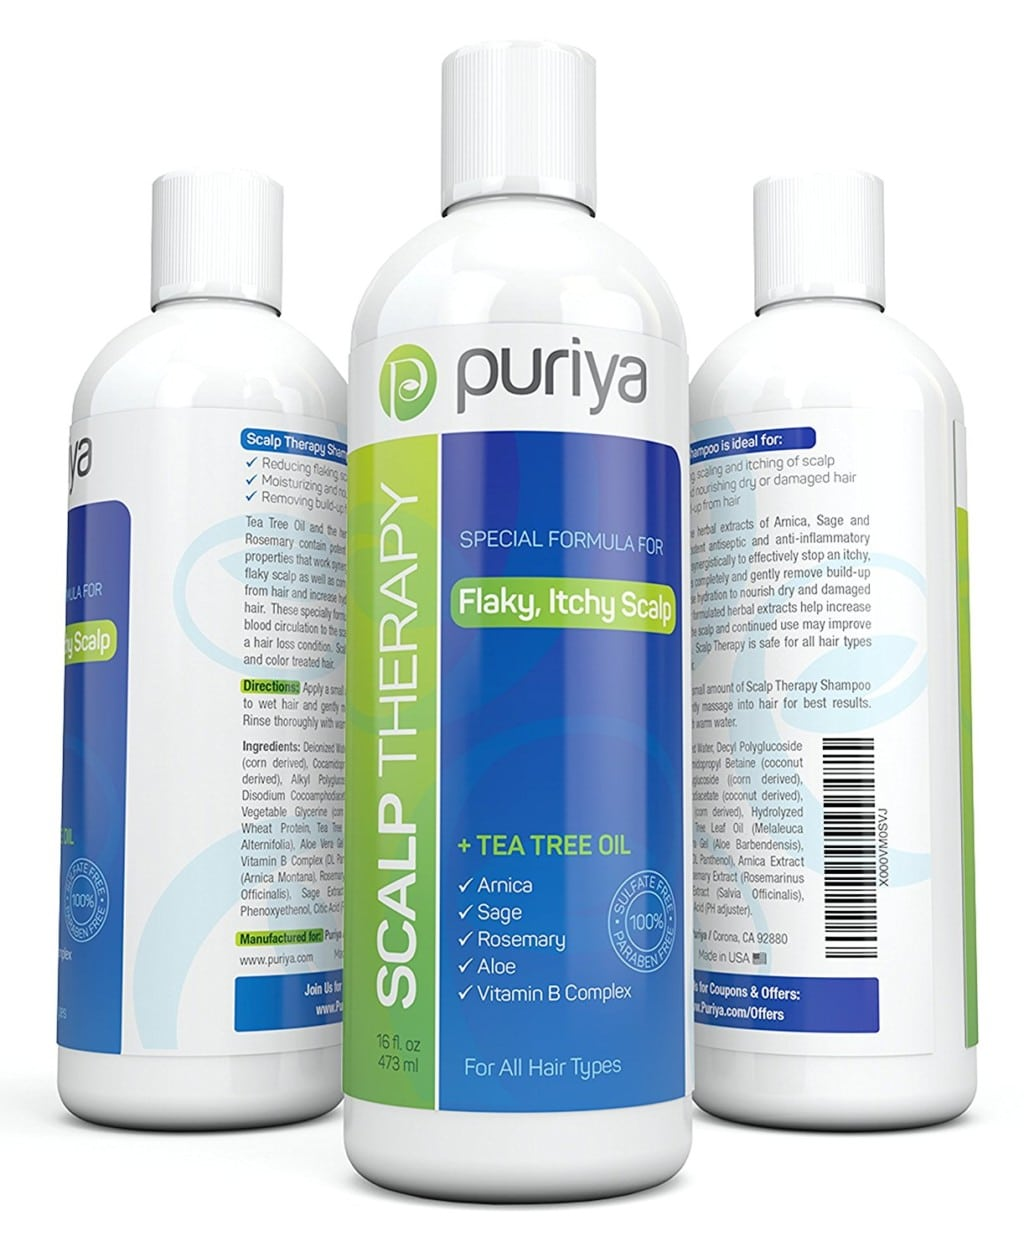 Puriya Natural Dandruff Shampoo review